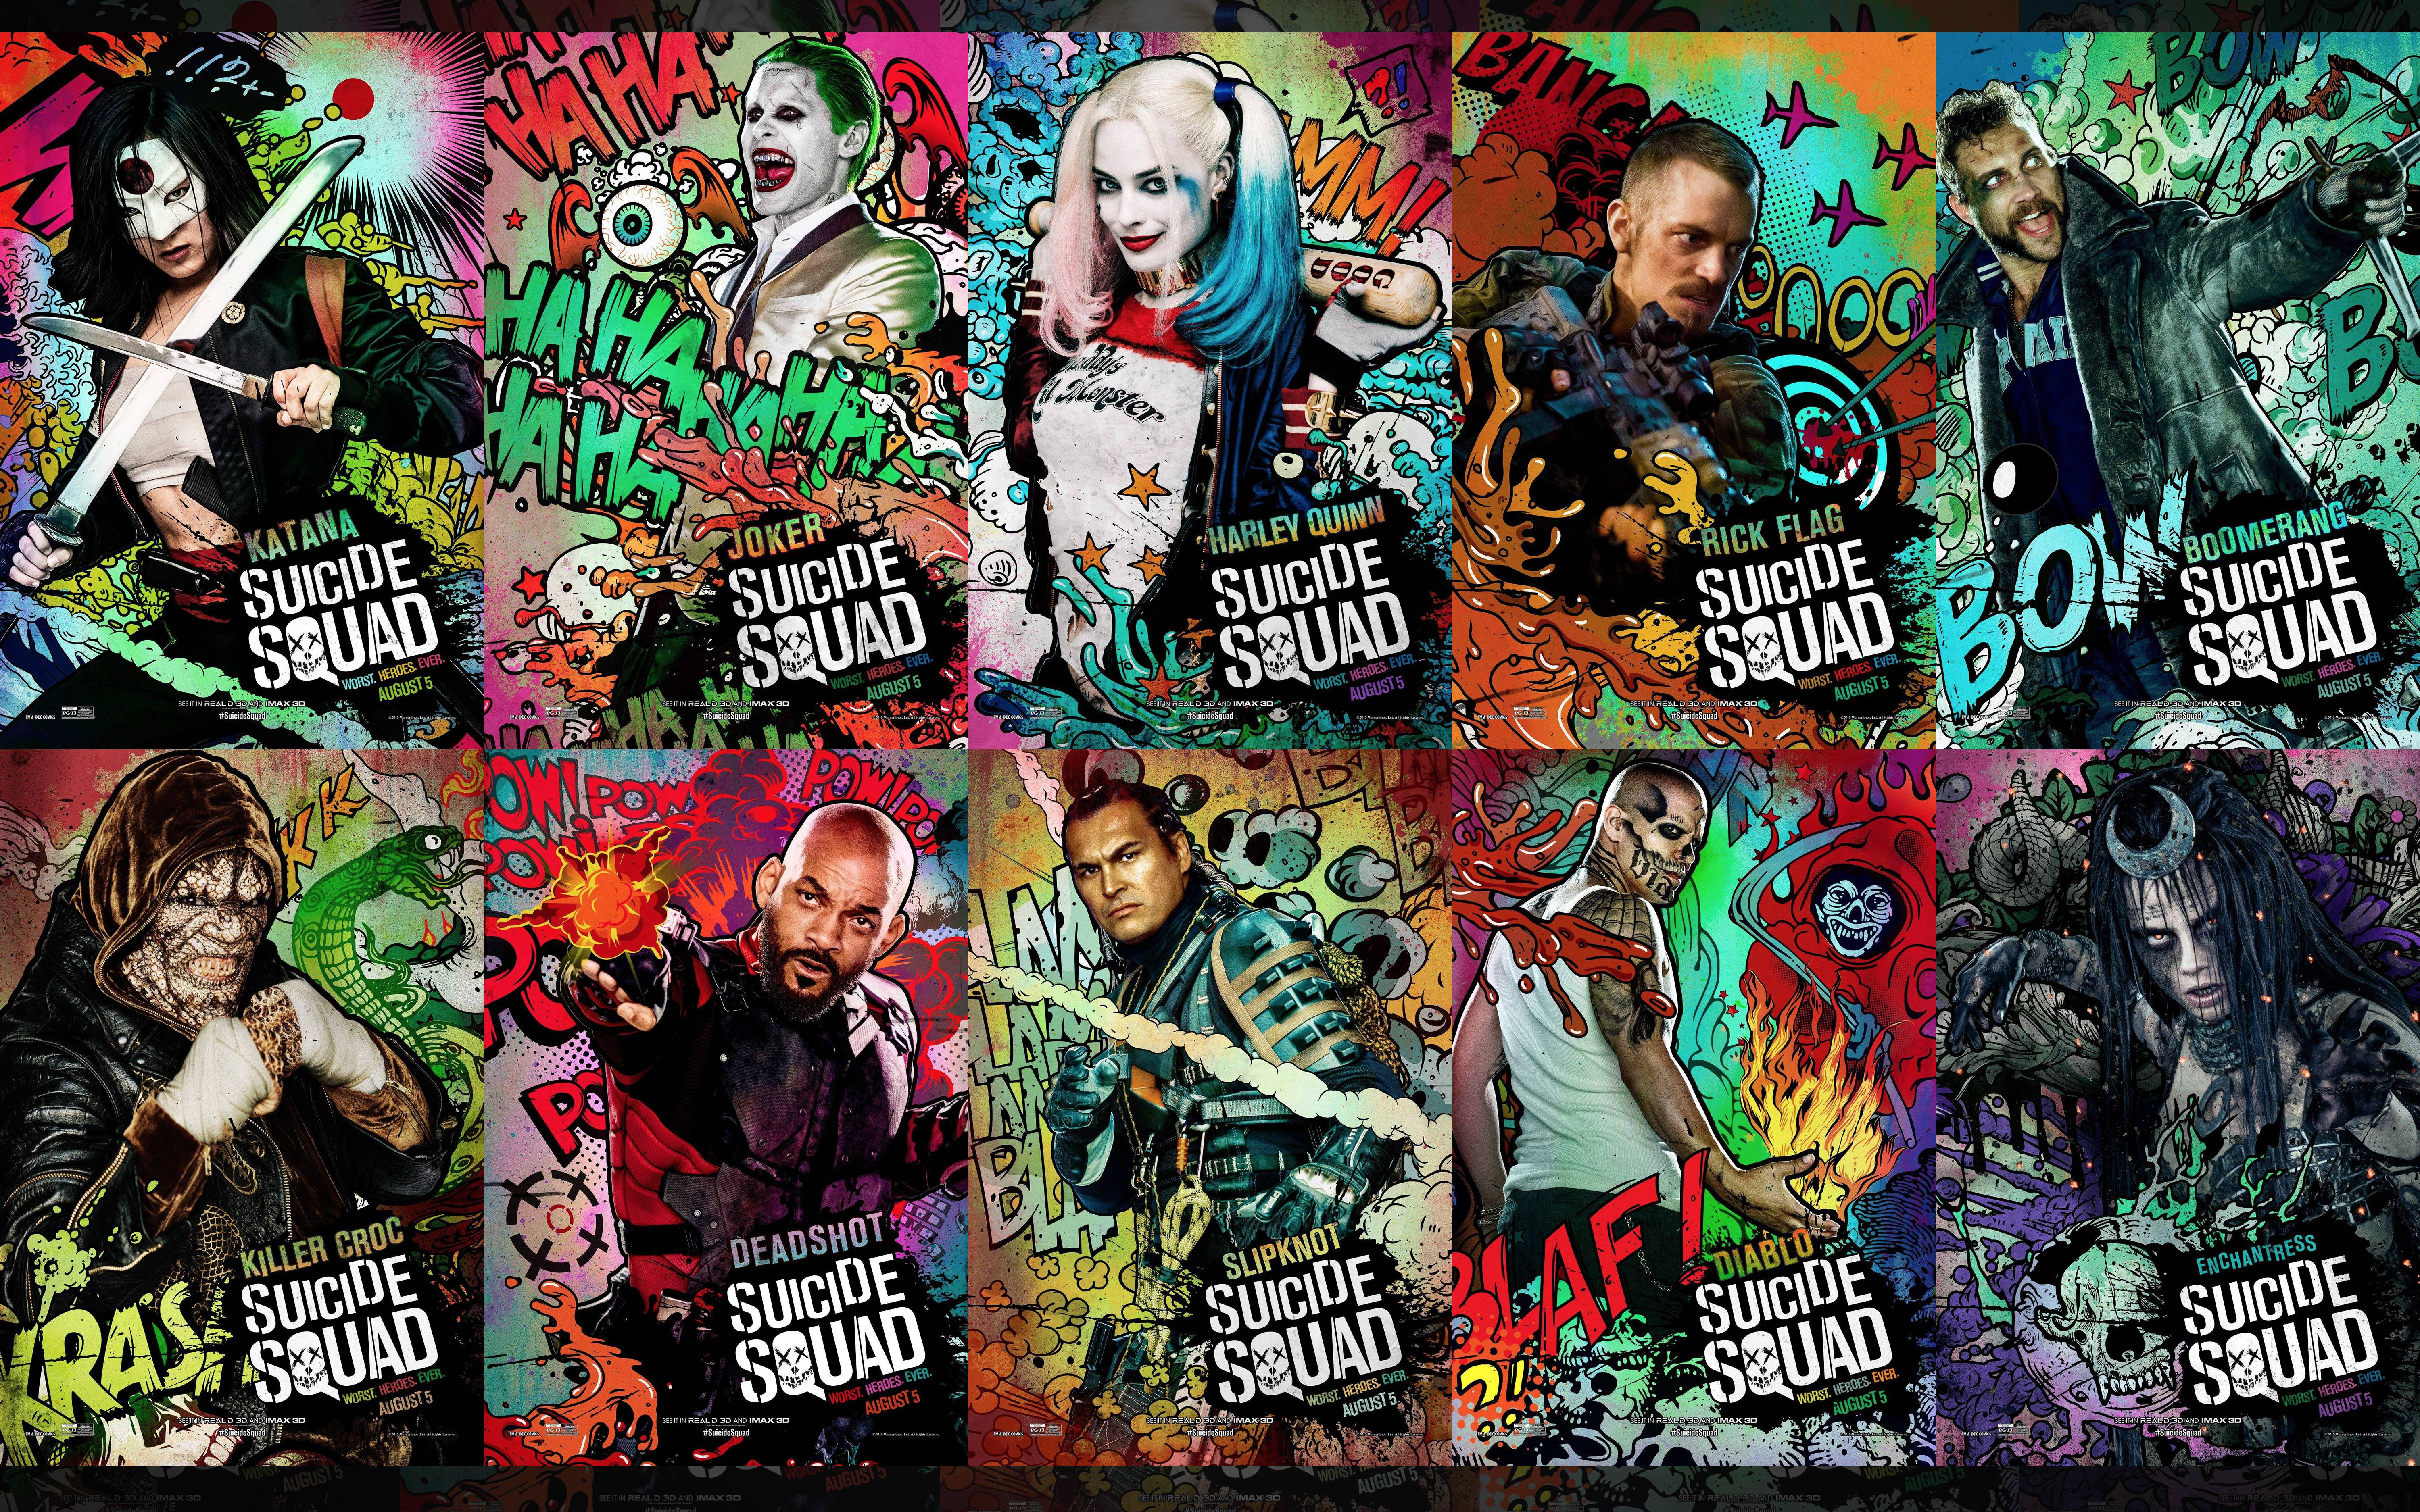 Ultra Resolution] Suicide Squad Compilation Wallpaper 6000x3750 6000x3750